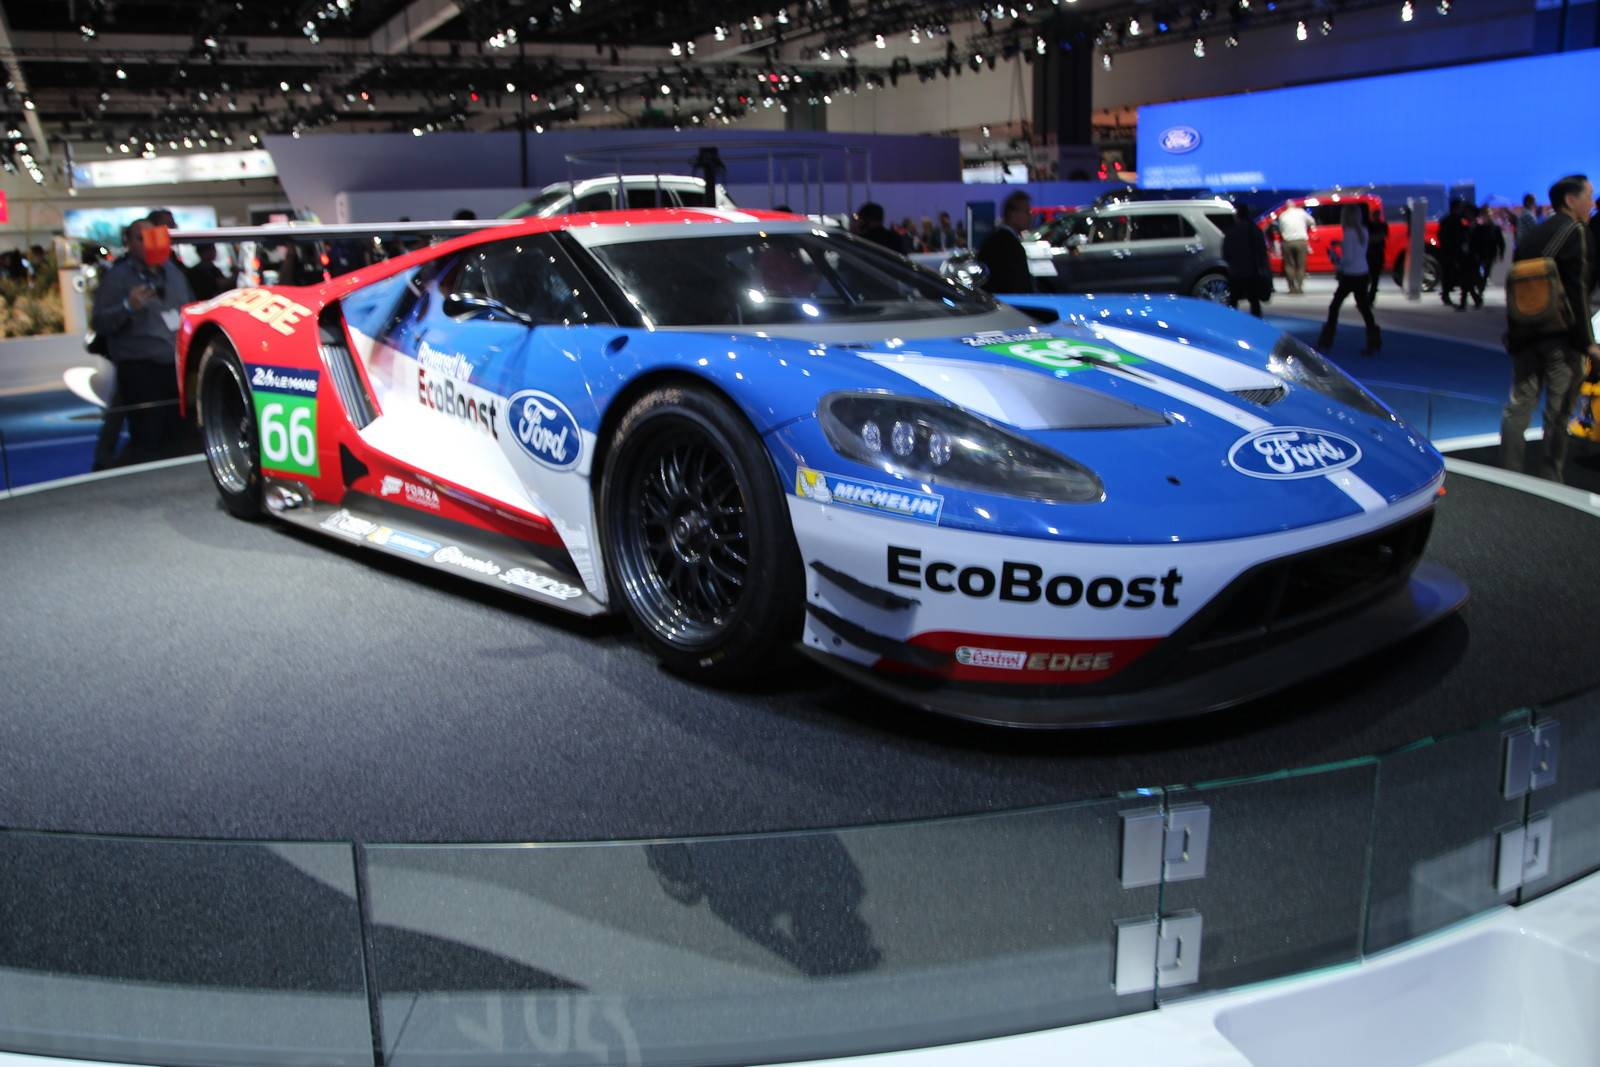 2017 Ford GT racer at LA Auto Show